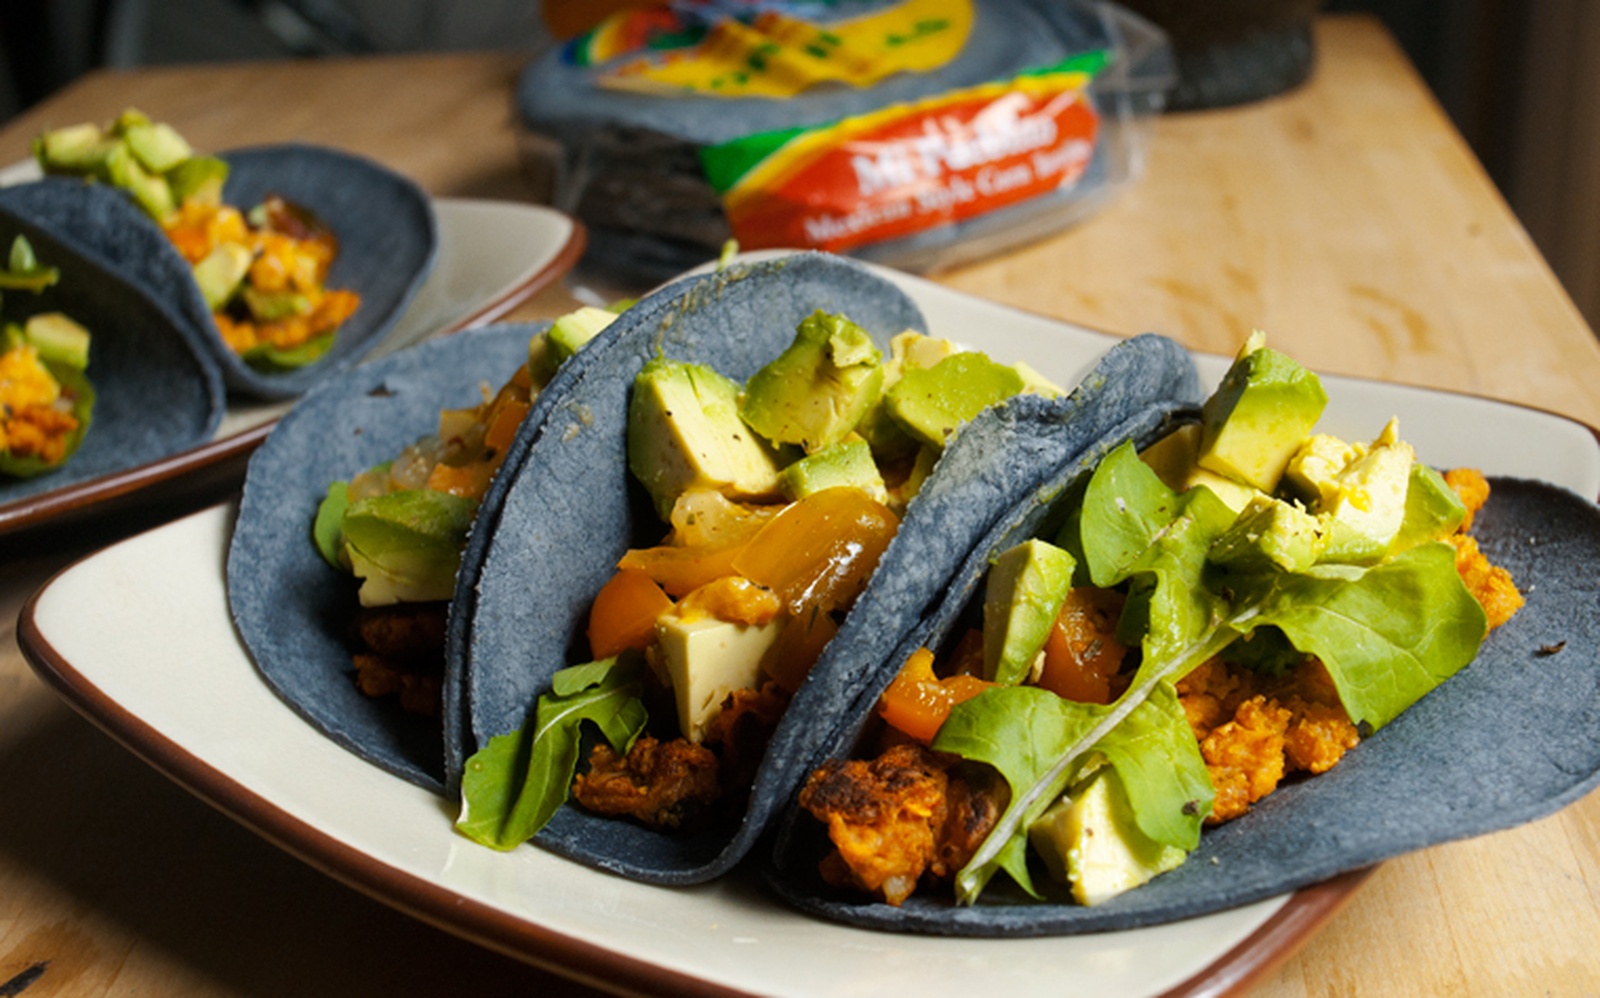 Scrambled Chickpea Tacos With Ginger Miso Sauce [Vegan, Gluten-Free]